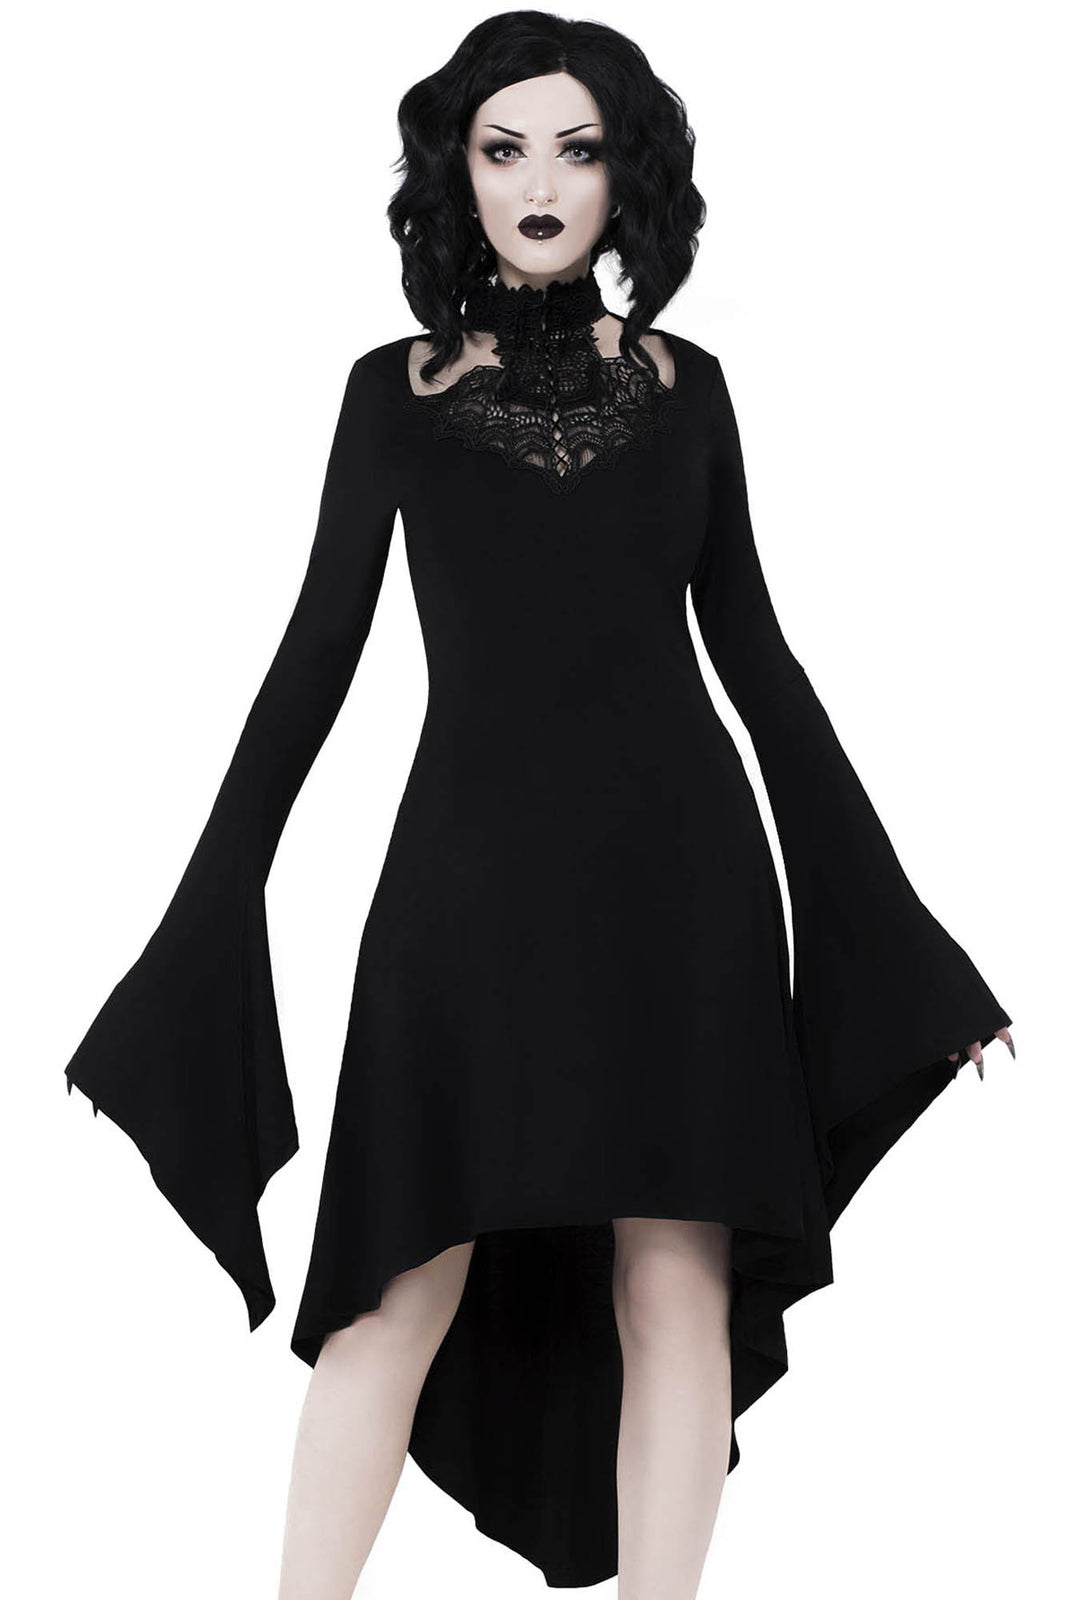 Shadow Sprite Dress [B]